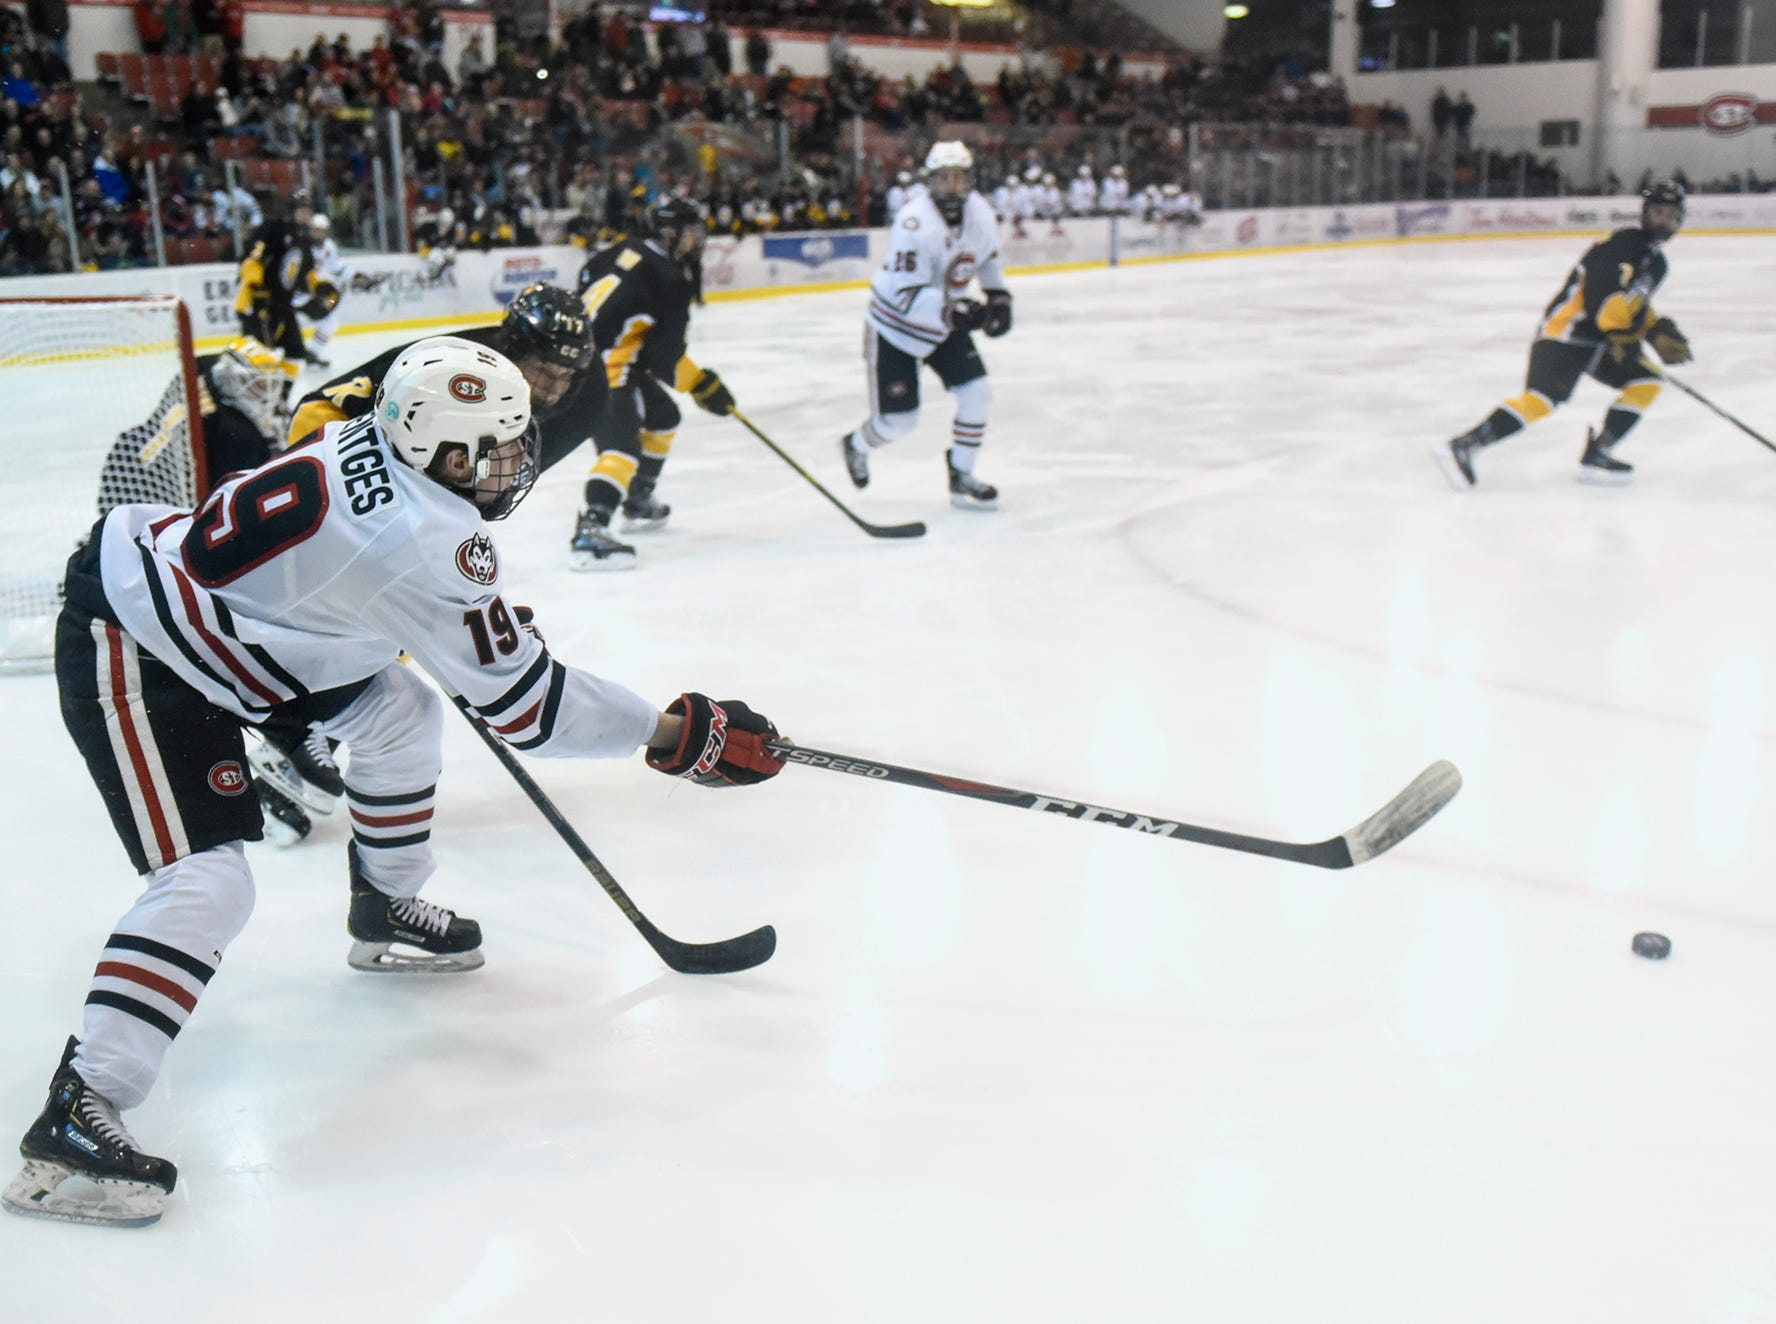 Sam Hentges passes the puck to an open teammate during the first period of the Saturday, Feb. 9, game at the Herb Brooks National Hockey Center in St. Cloud.